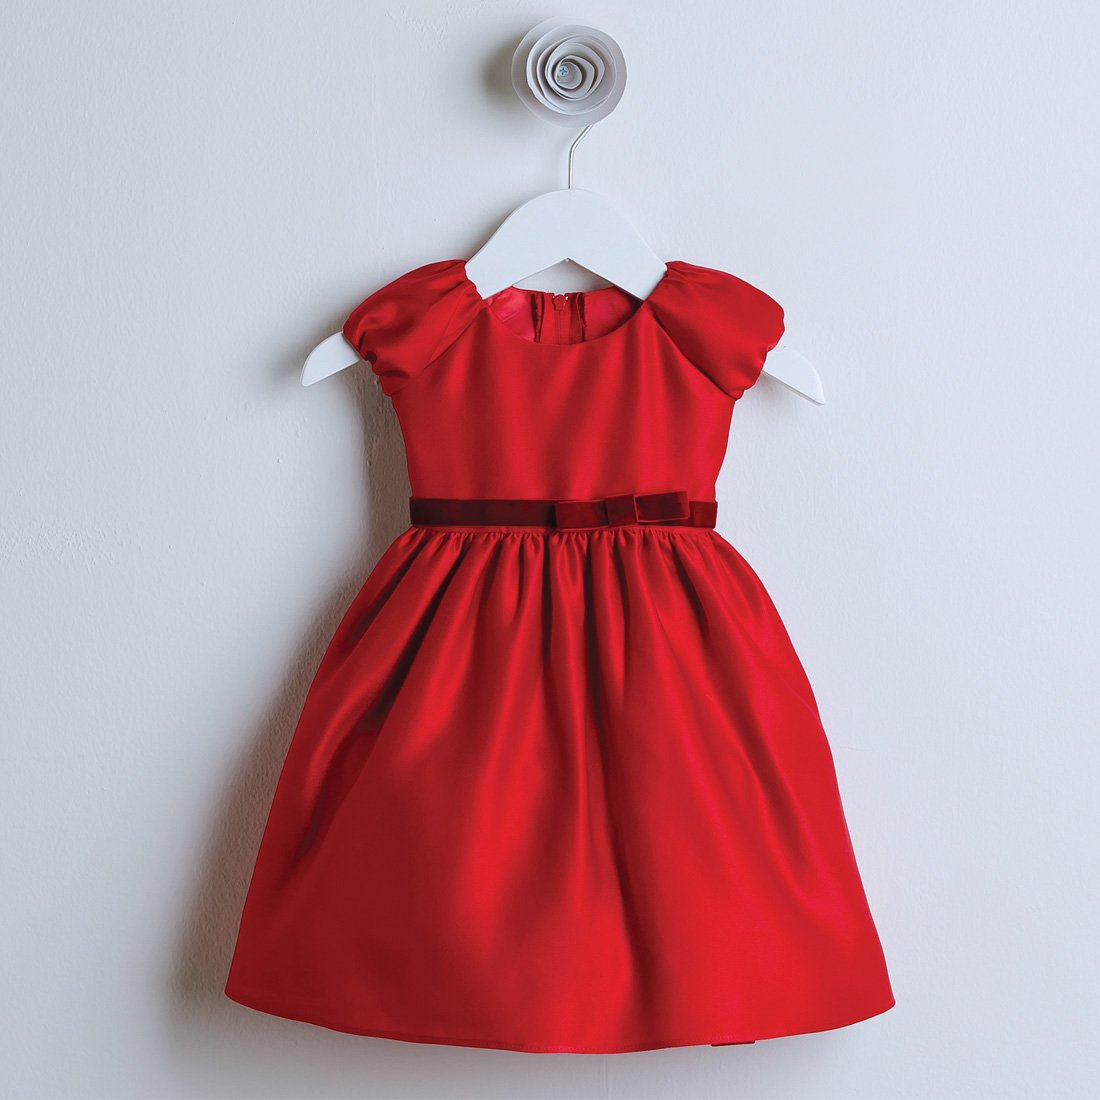 Smocked Christmas Dresses